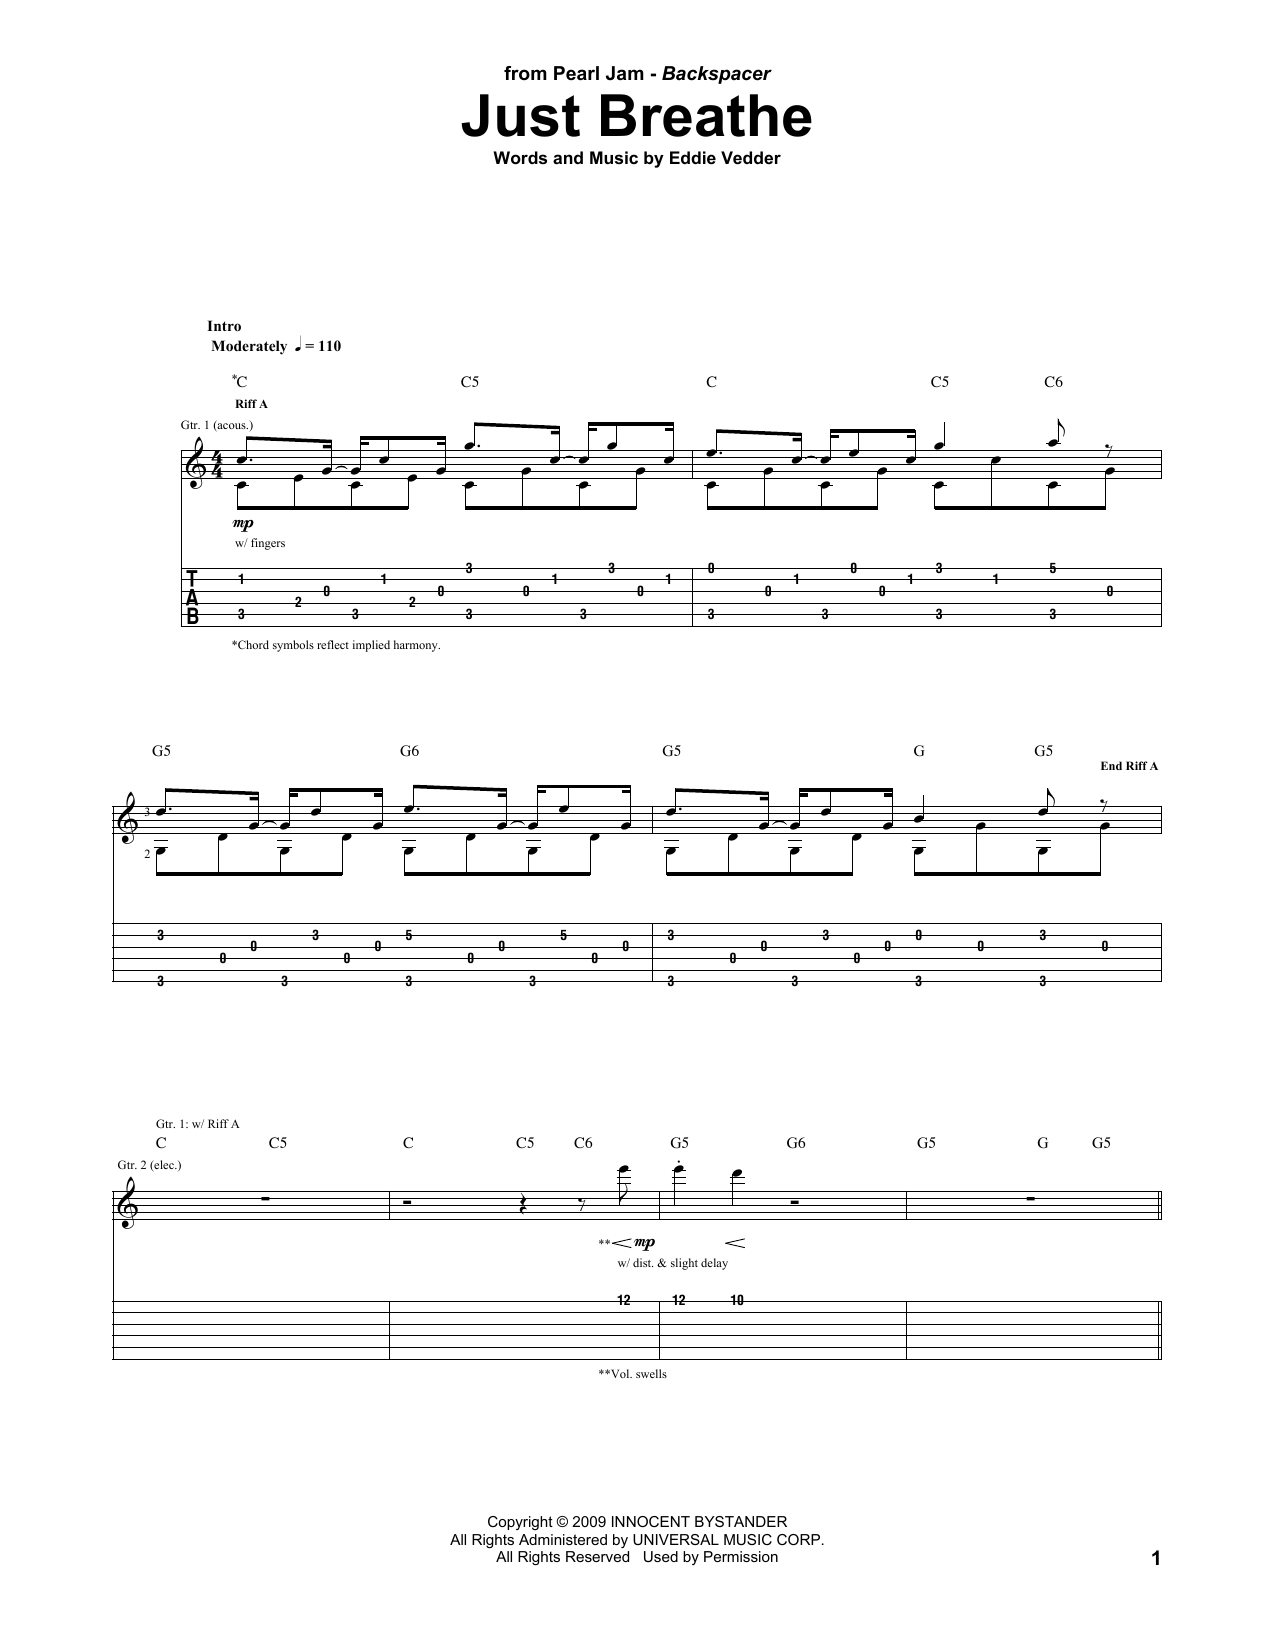 Just Breathe Sheet Music